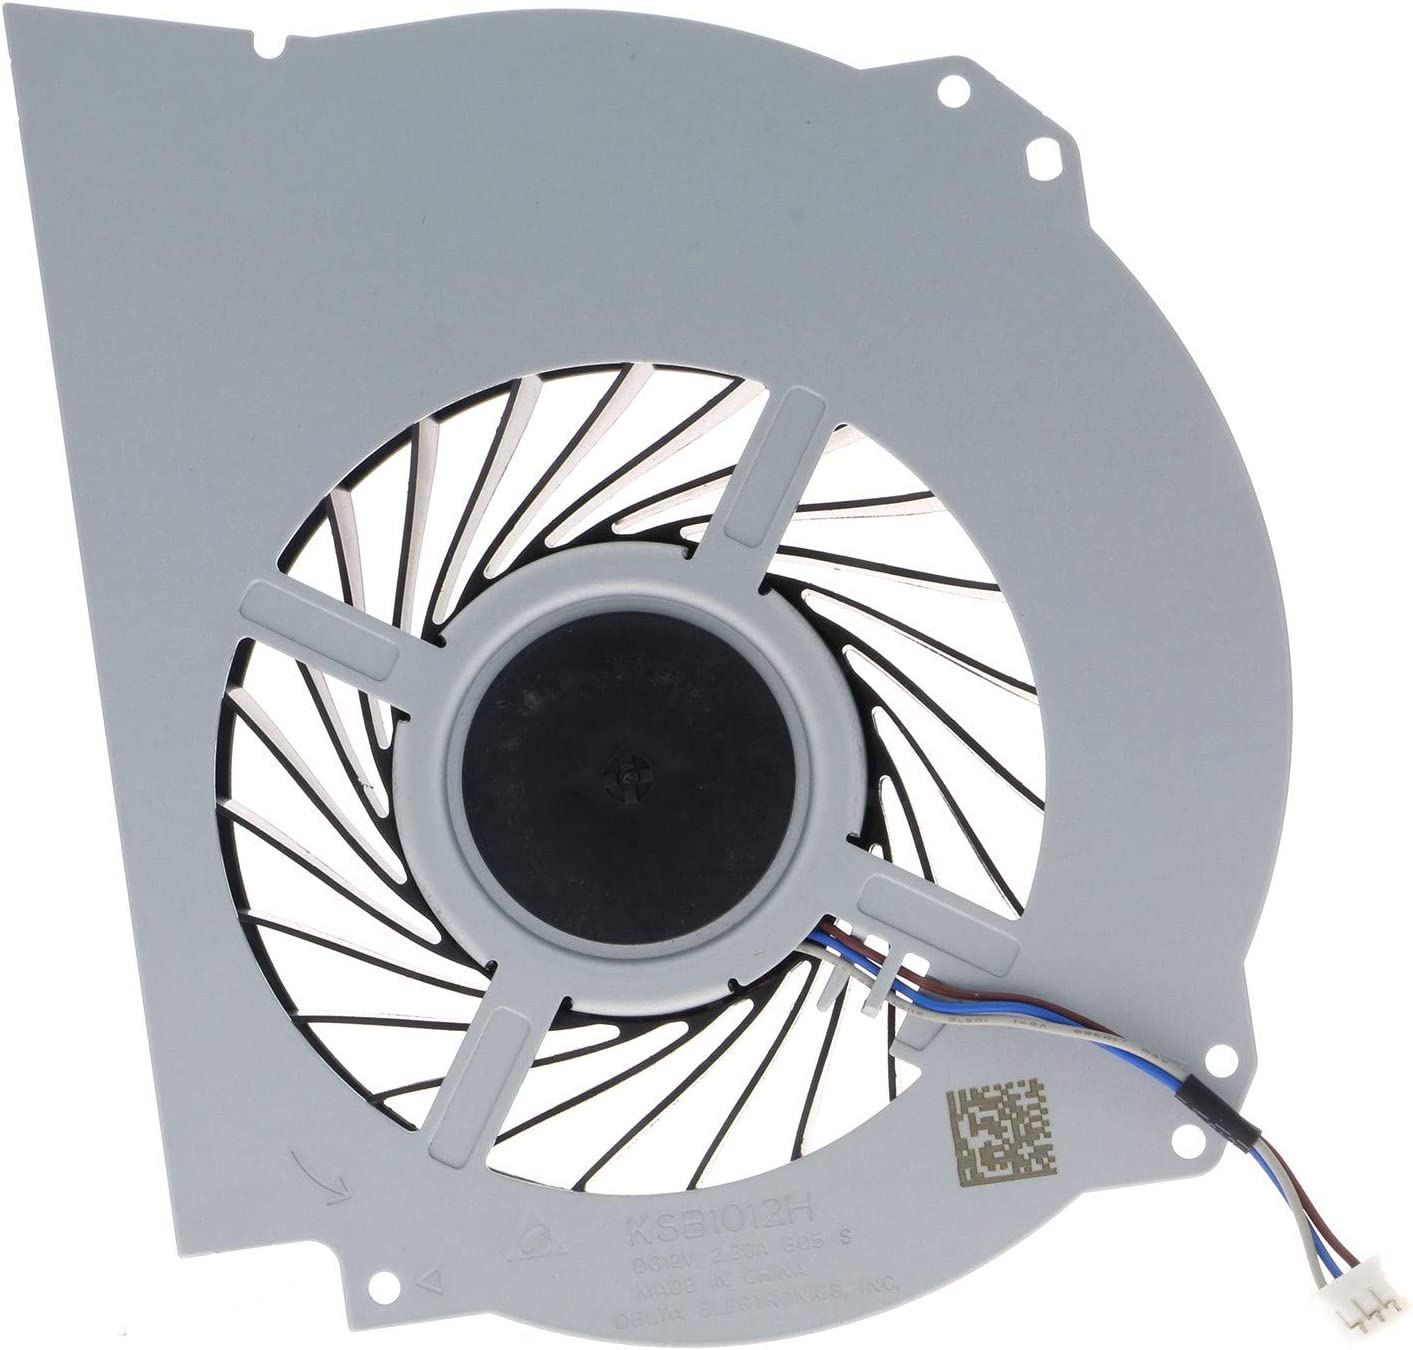 CPU Cooling Fan for Sony Playstation 4 PS4 Pro G95C12MS1AJ-56J14 KSB1012H